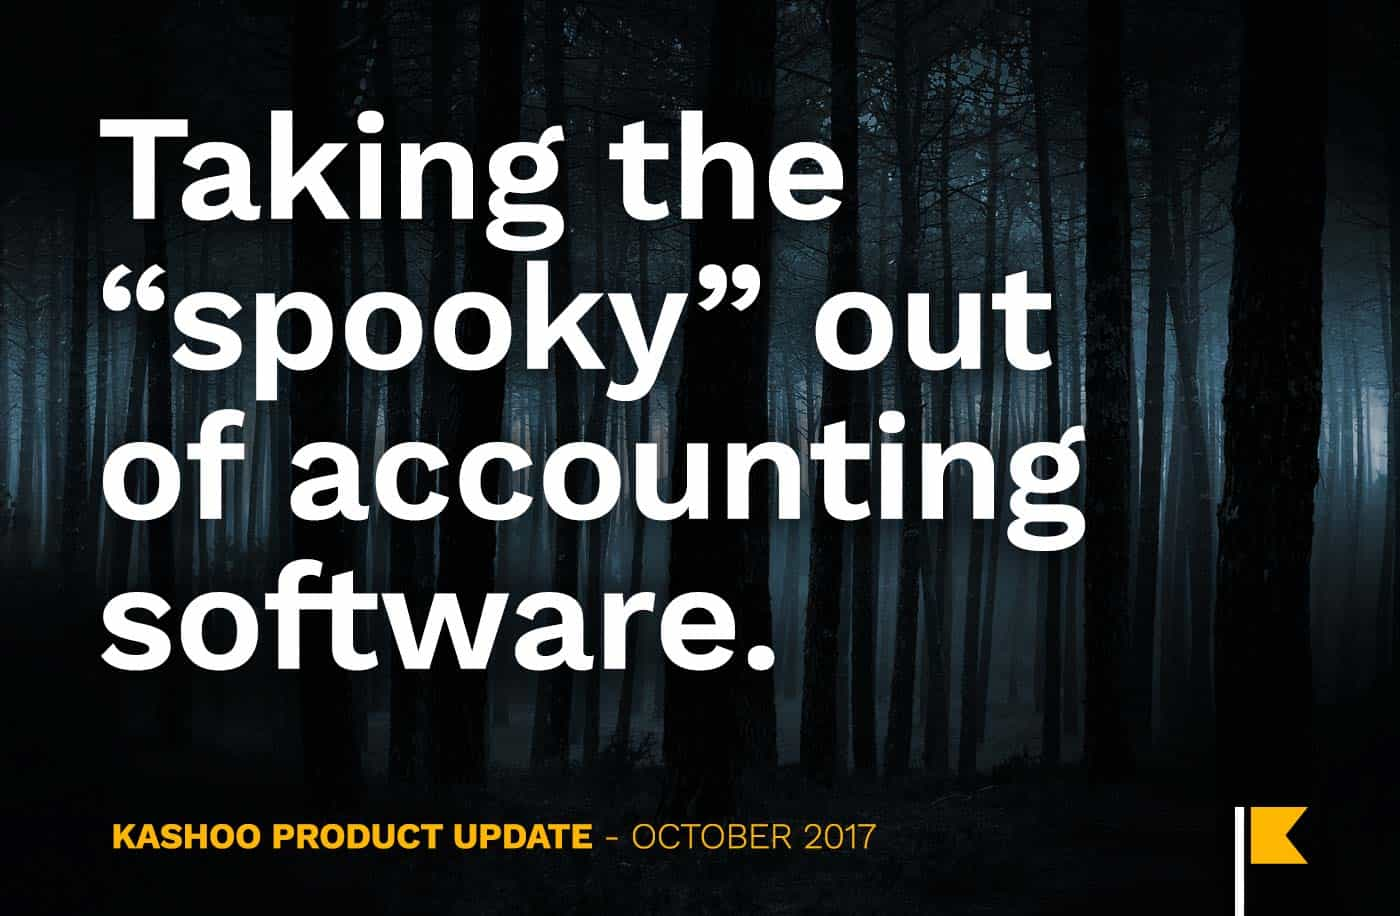 Kashoo is taking the spooky out of accounting software.